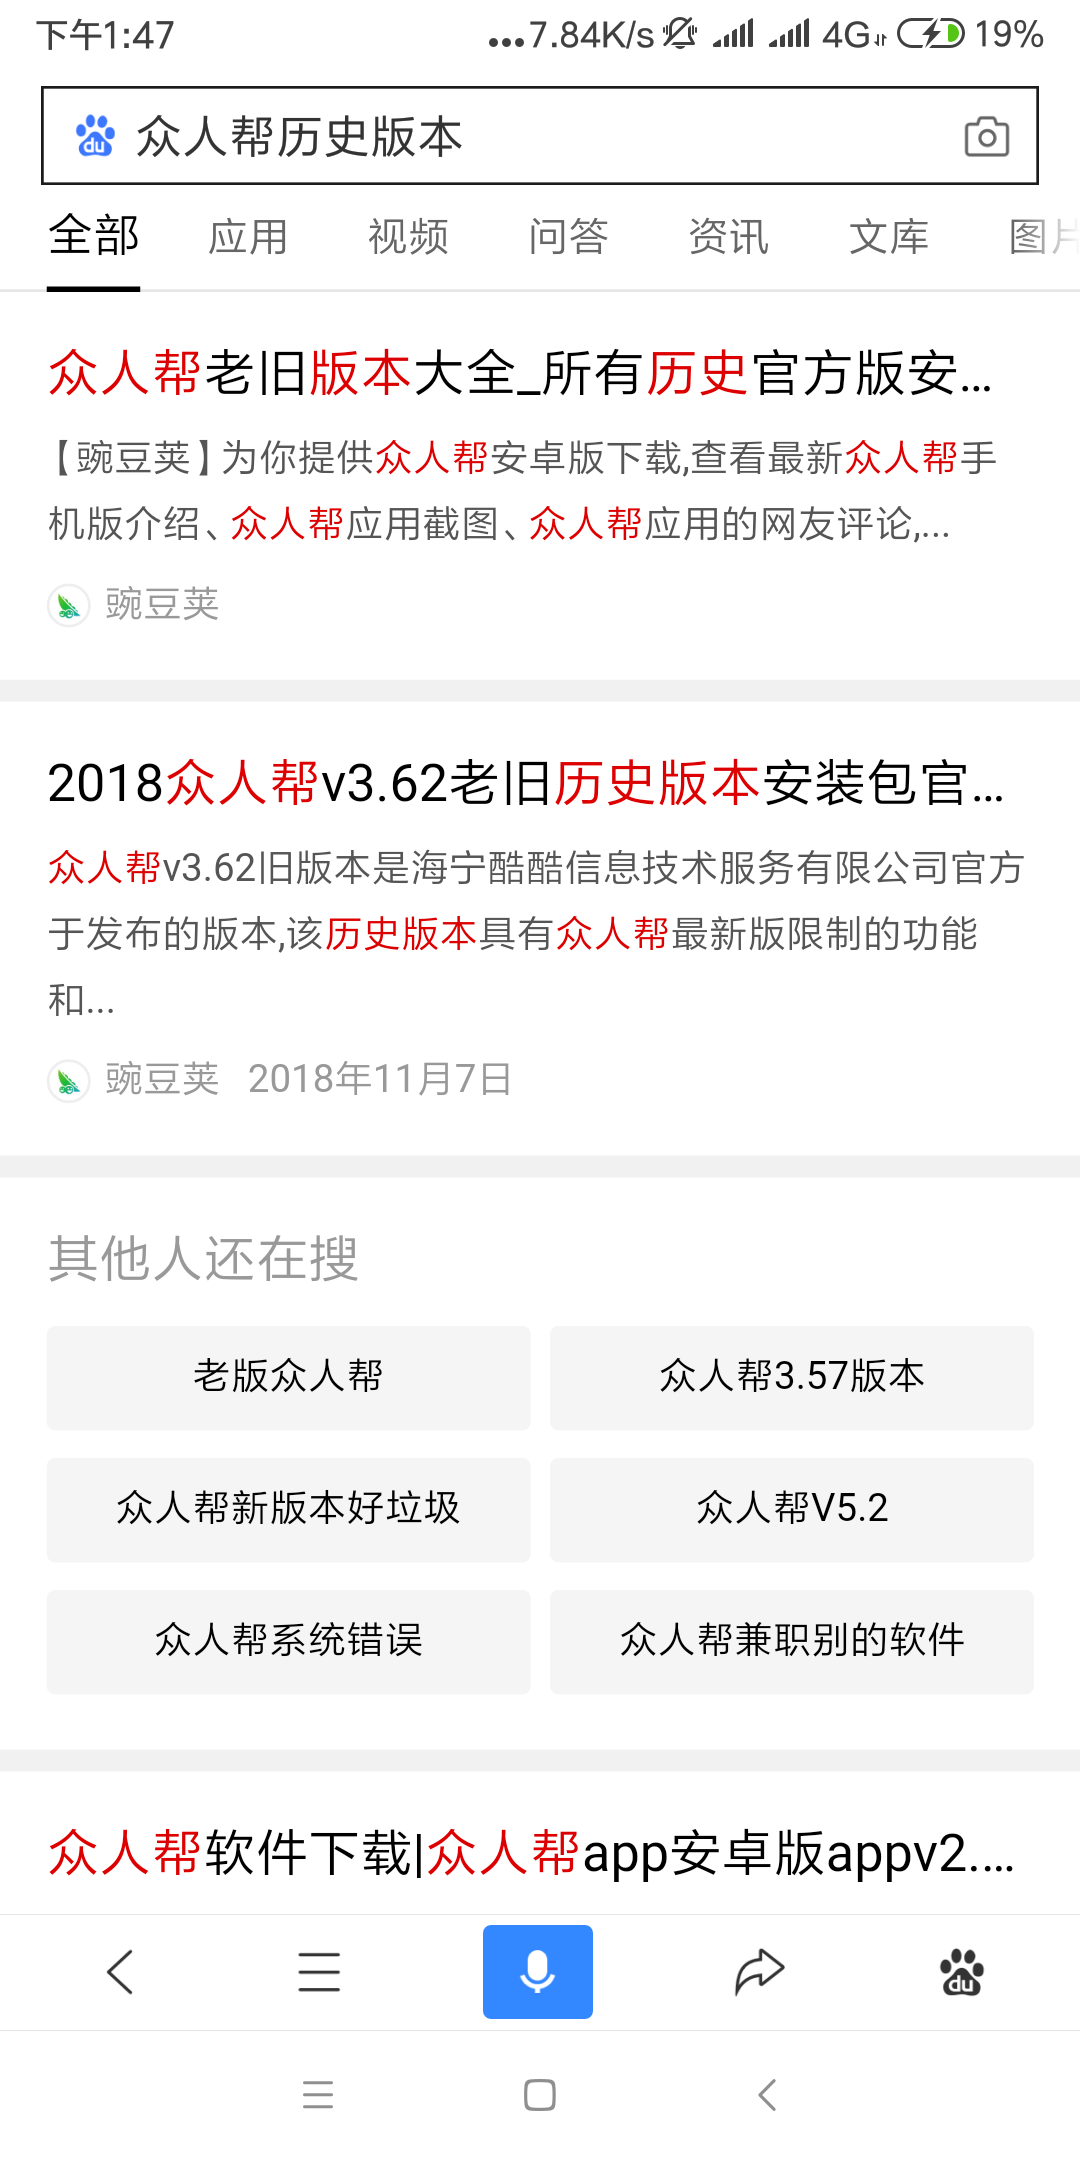 Screenshot_2018-12-15-13-47-14-706_com.baidu.searchbox.png